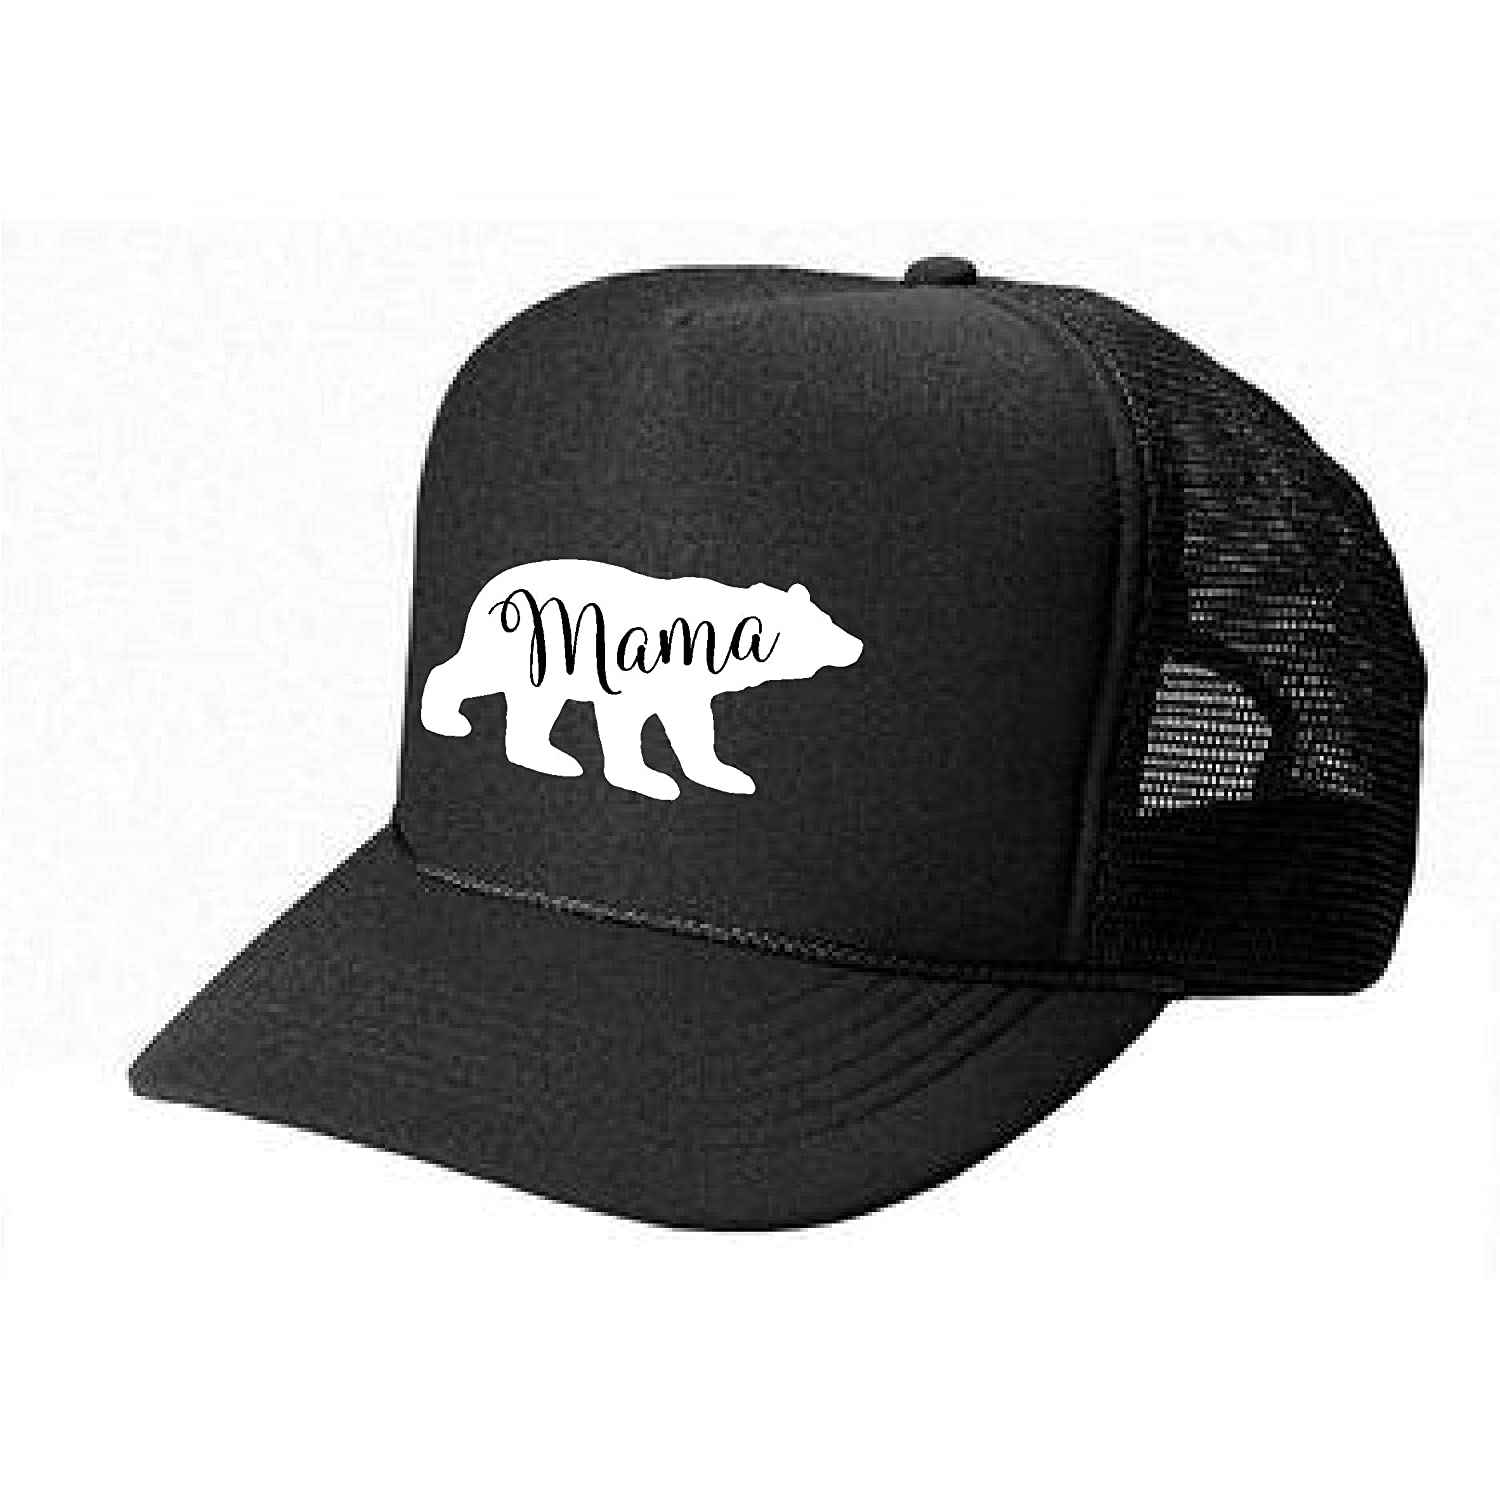 Epic Designs Womens Mama Bear Trucker Hat - Unisex Size Custom Design Hat  (Black-White Print) at Amazon Women s Clothing store  fb0df1225b8